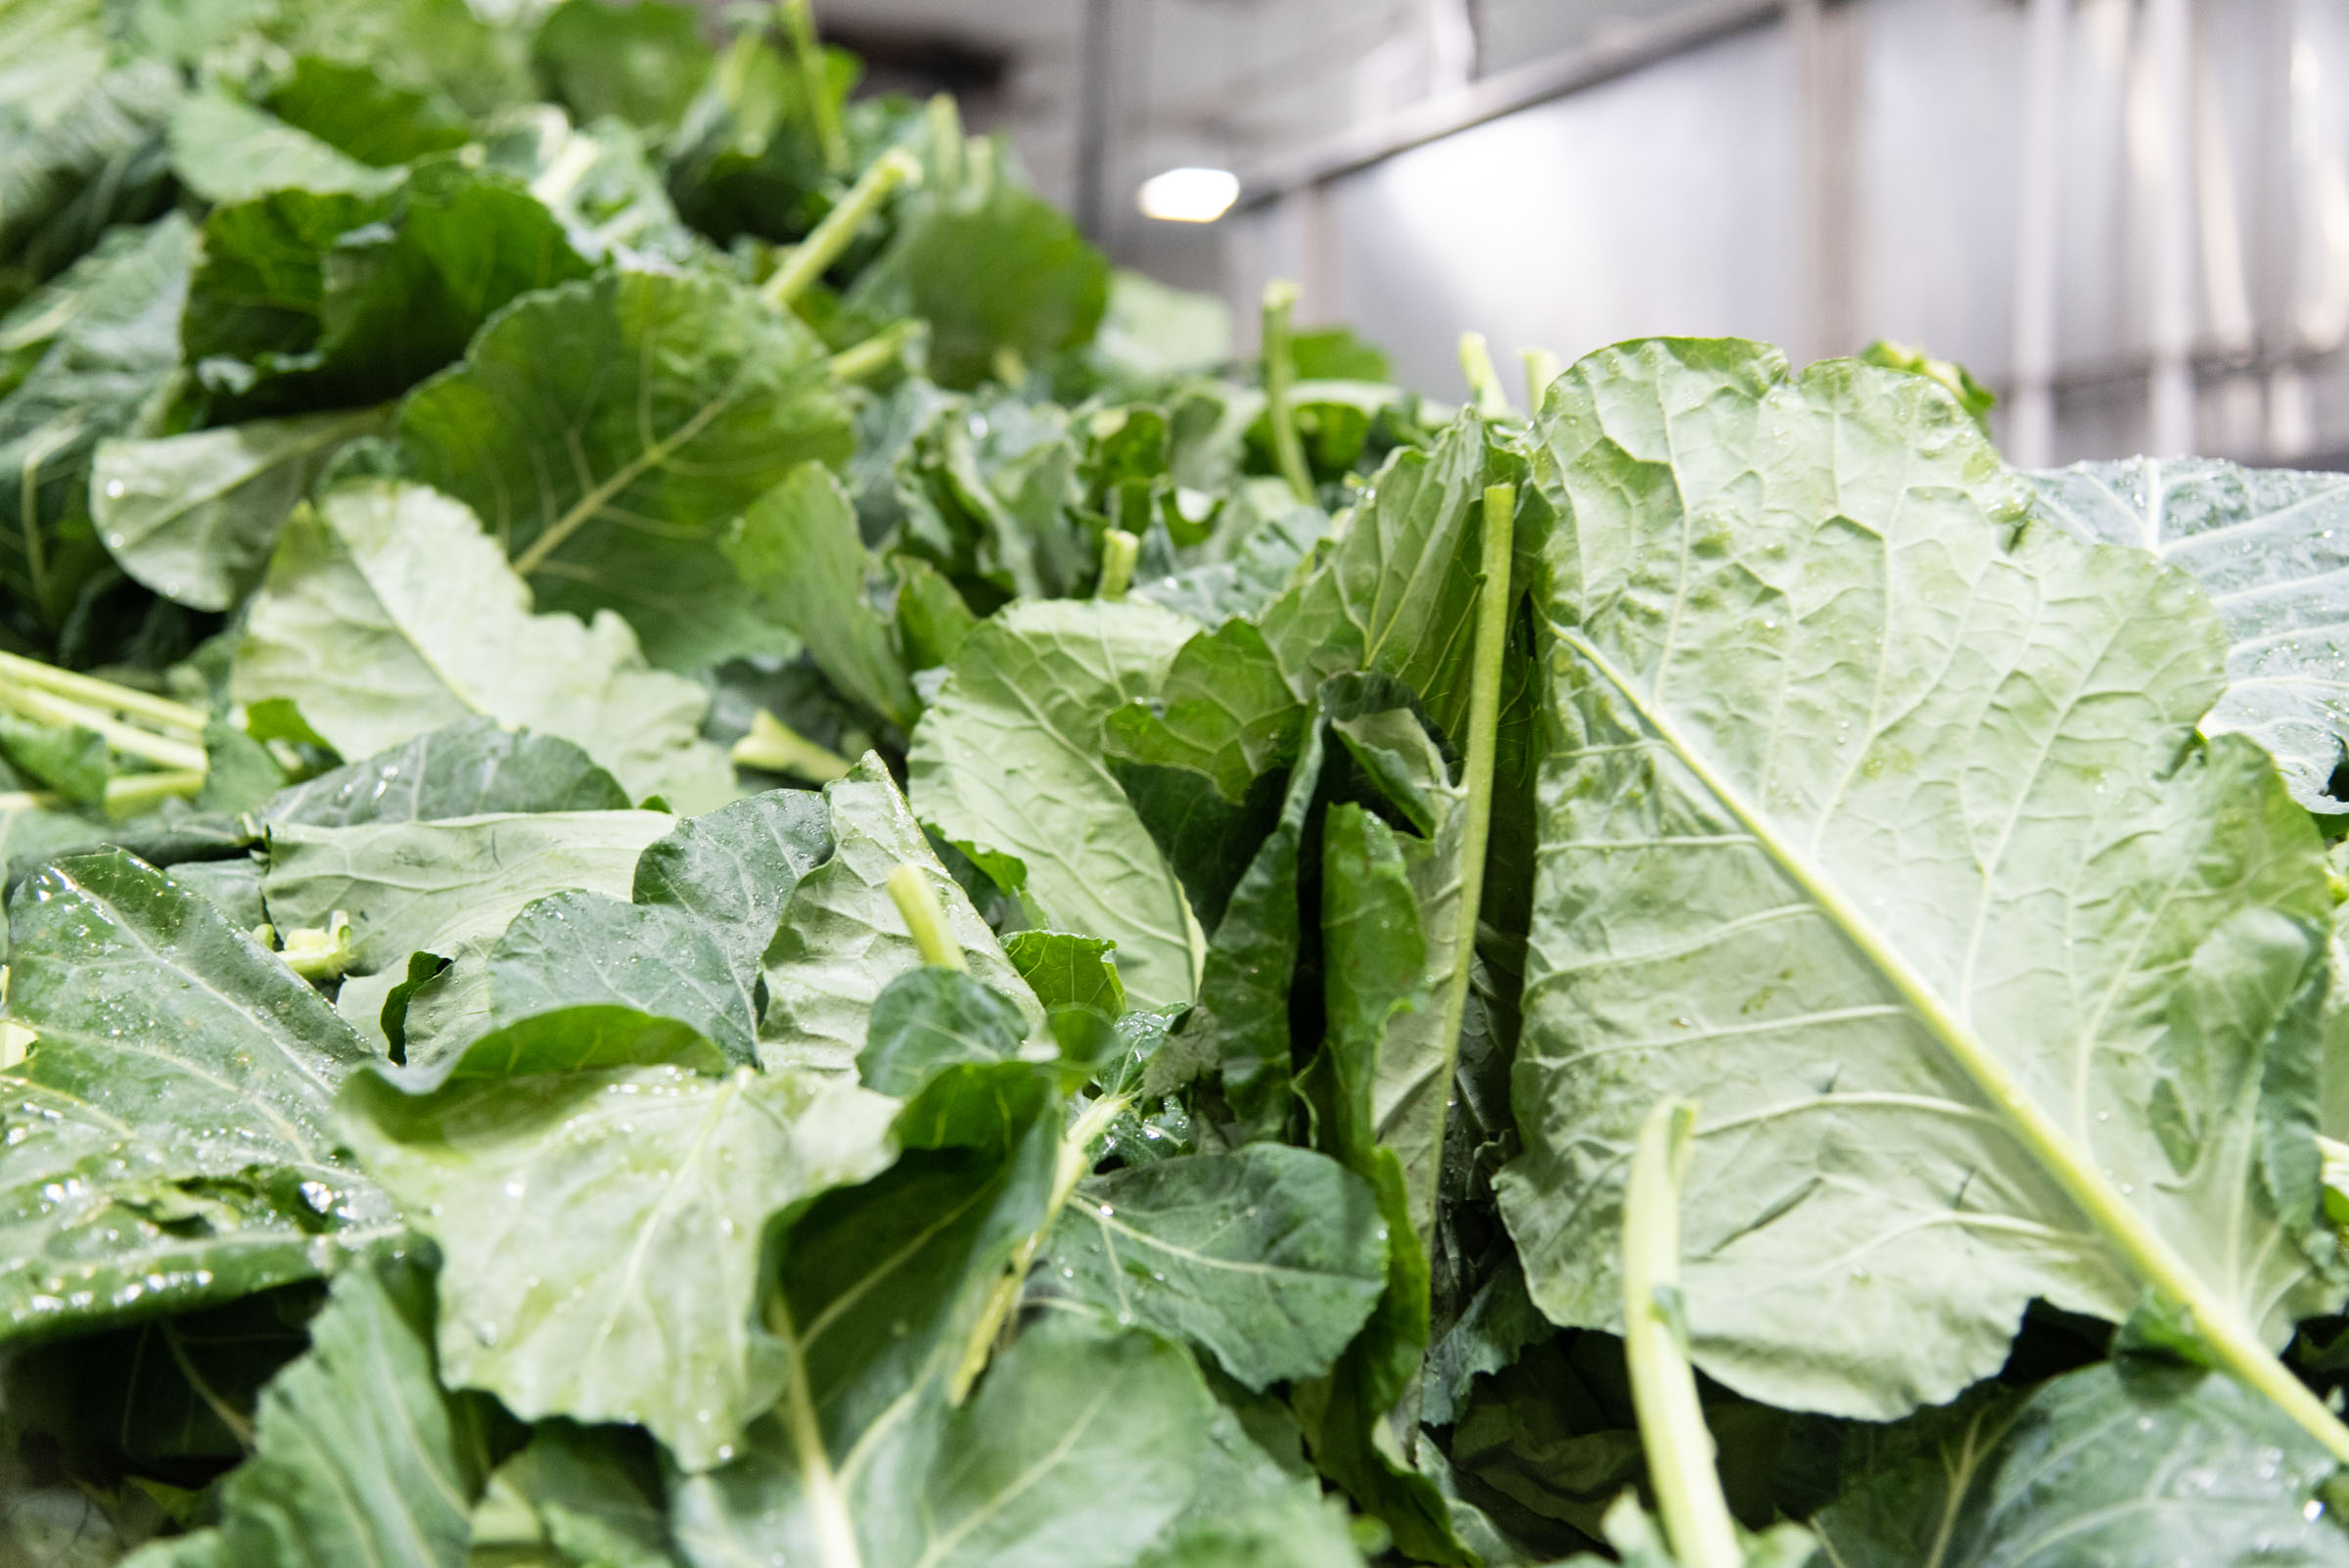 Collard greens entering our processing lines in Pelion, SC.